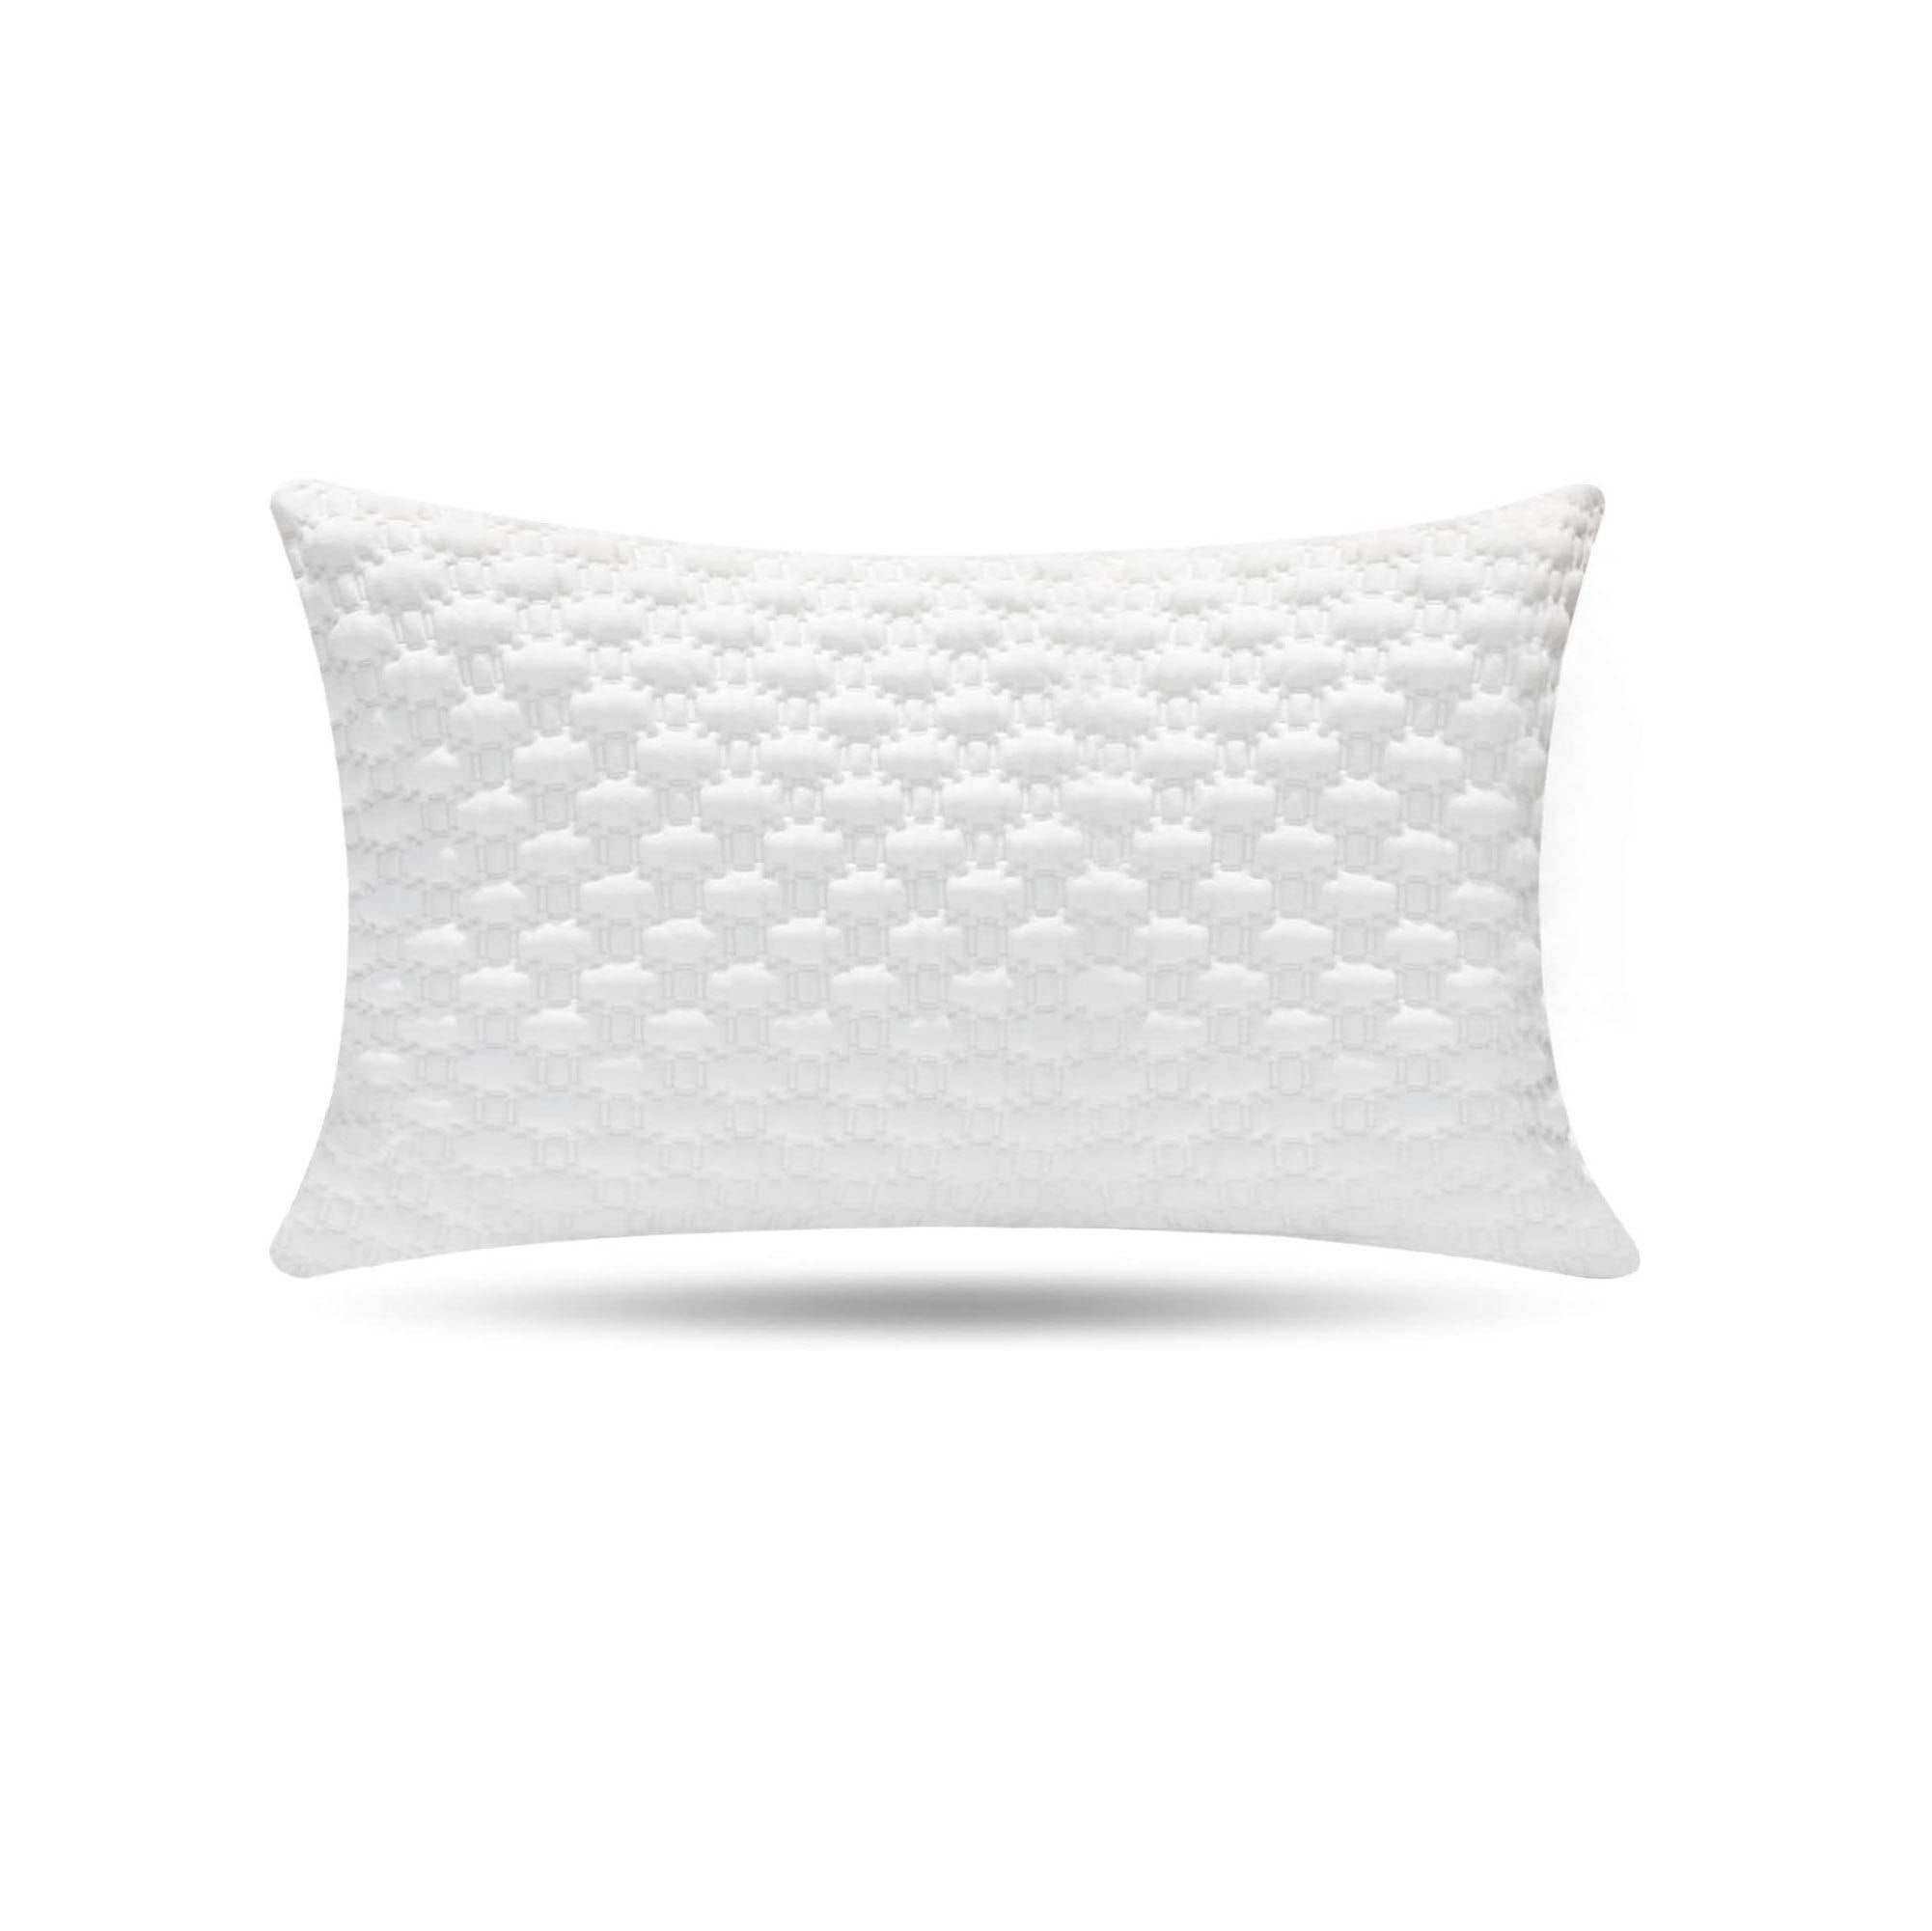 Milemont Shredded Memory Foam Pillow, Bed Pillows, Pillow for Sleeping – Support Side Back Stomach Sleepers